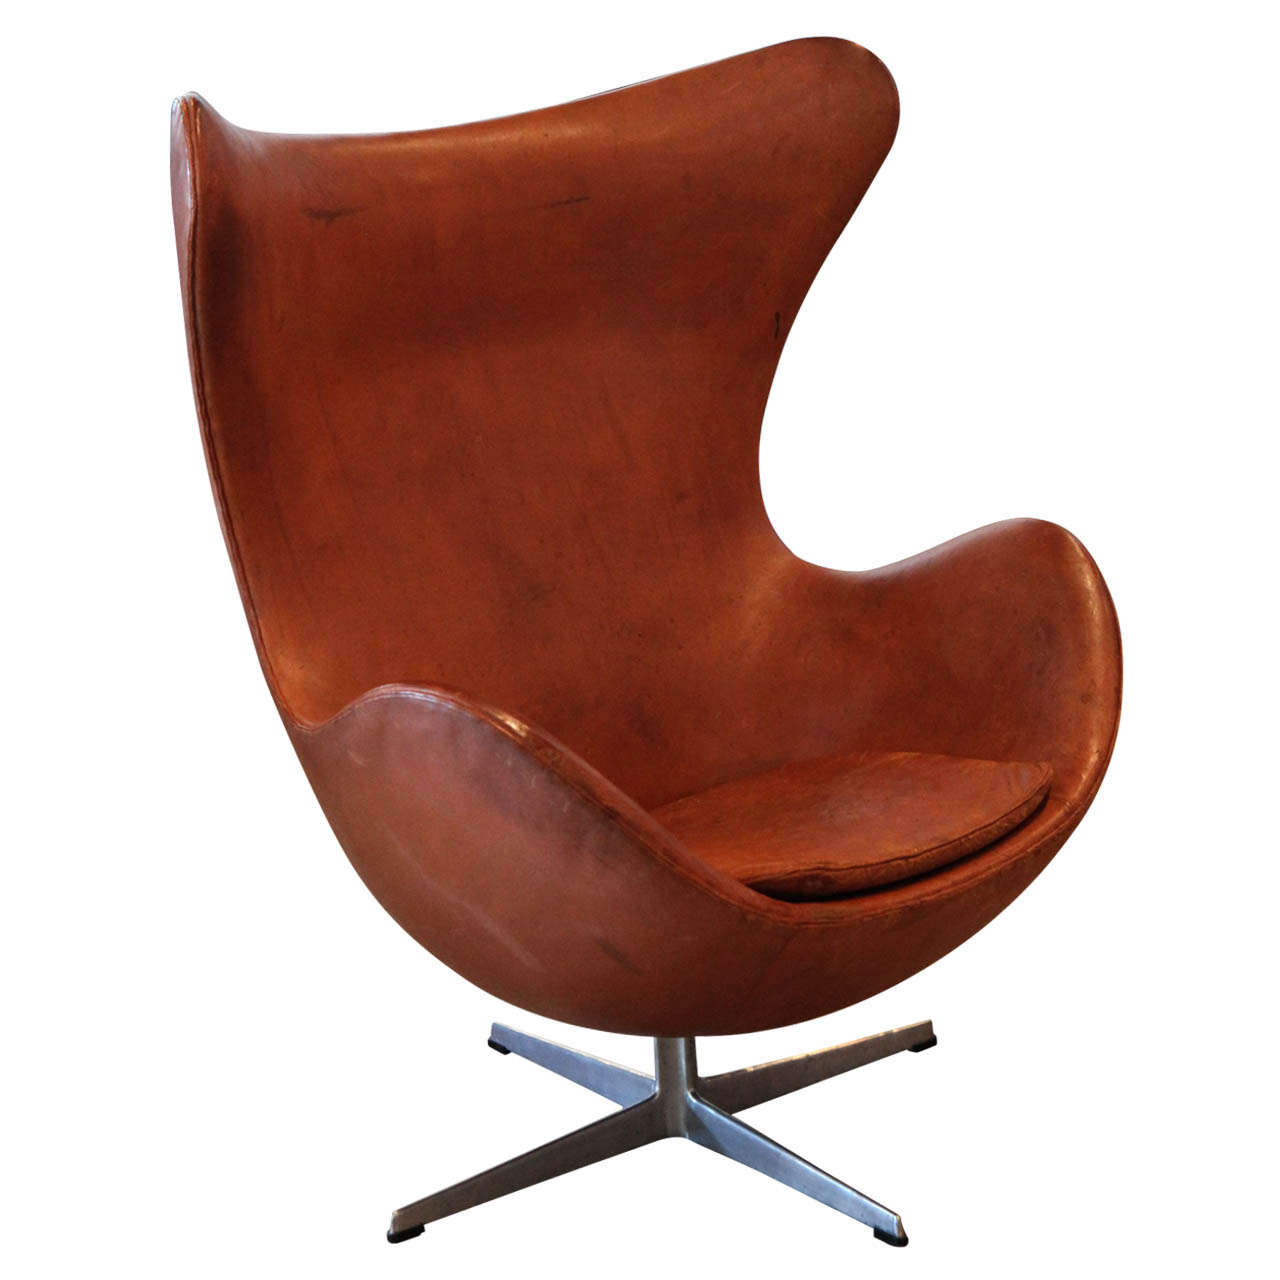 arne jacobsen cognac egg chair denmark 1969 at 1stdibs. Black Bedroom Furniture Sets. Home Design Ideas